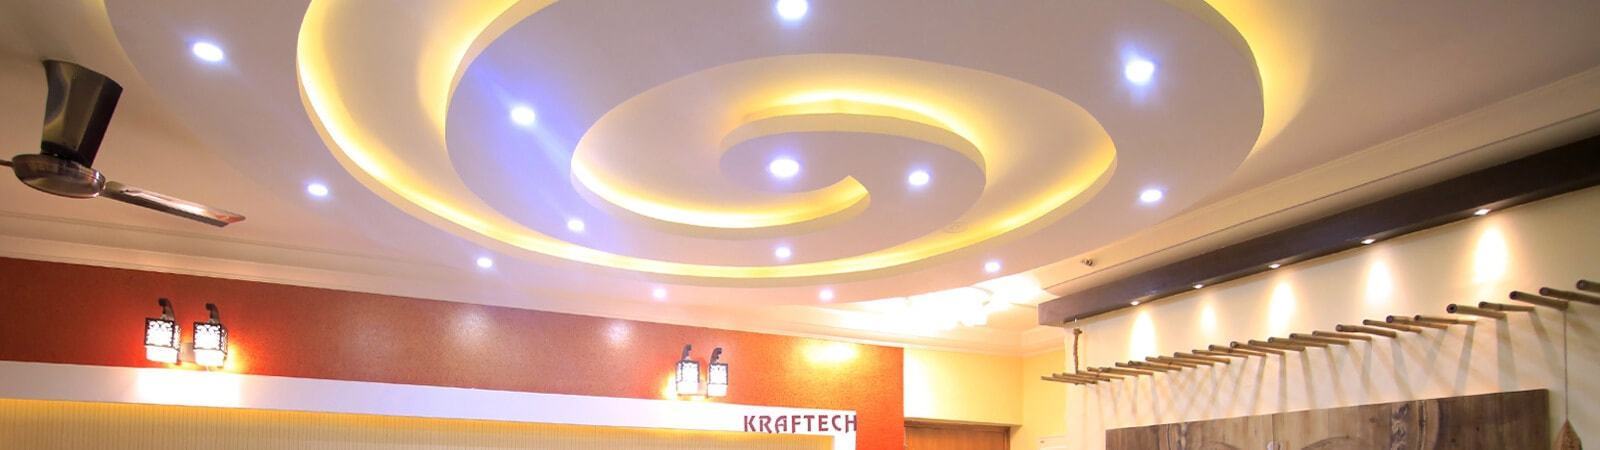 False ceiling be equipped drop ceiling hangers be equipped tin drop ceiling tiles be equipped hanging ceiling tiles